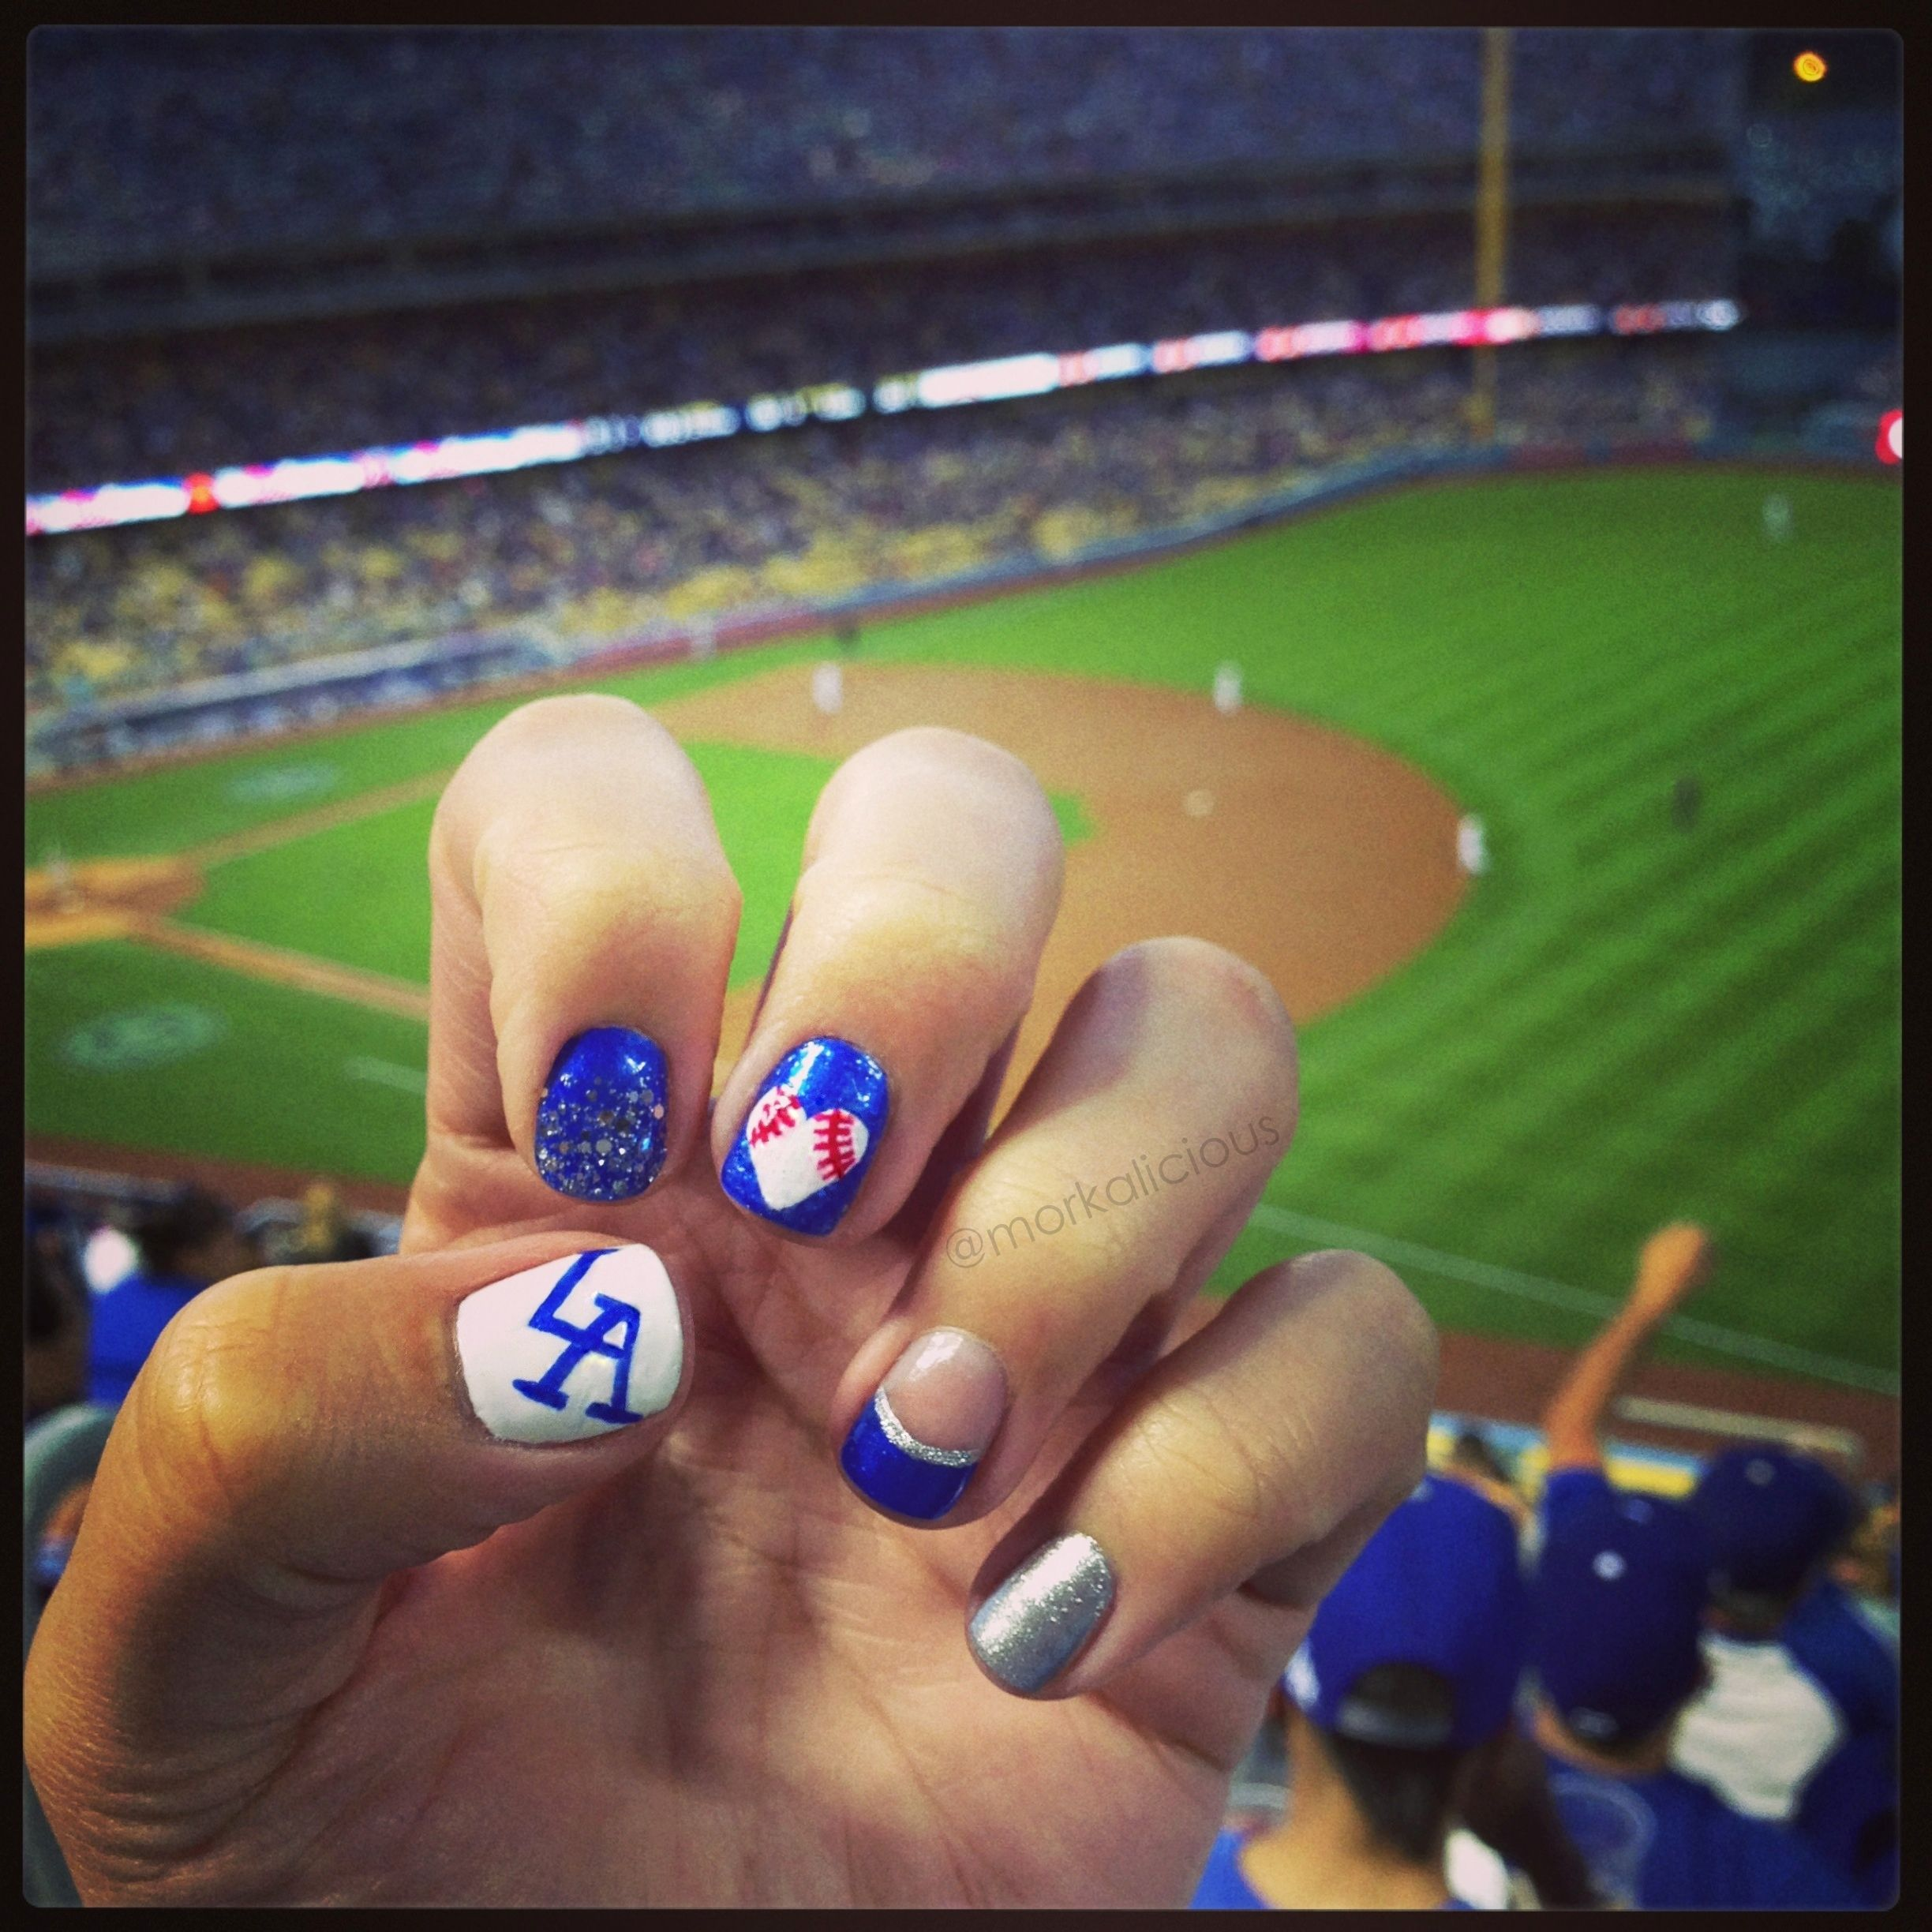 My nail art for the Hello Kitty Blanket giveaway at Dodger Stadium ...